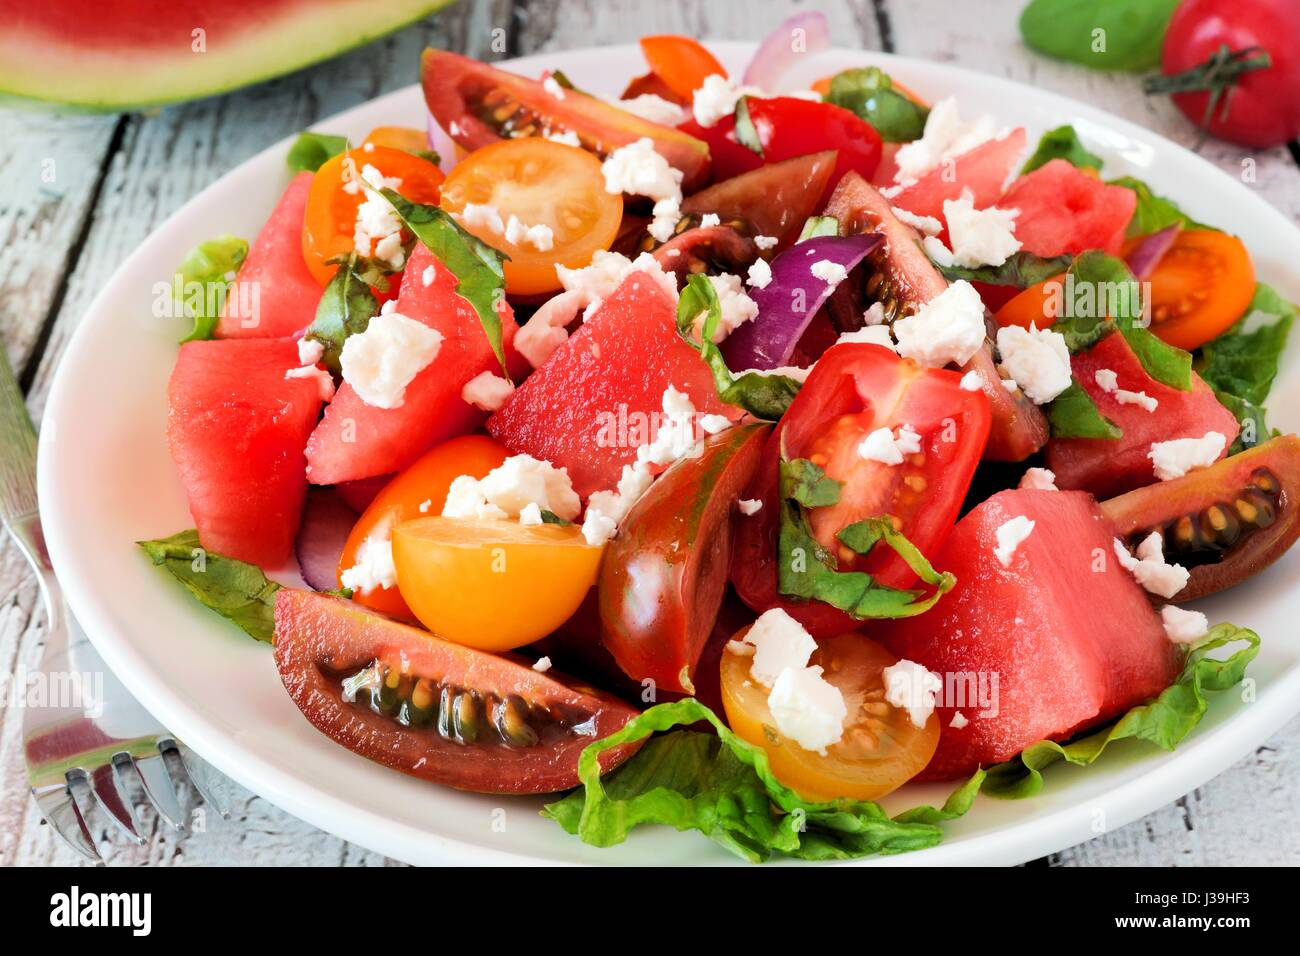 Watermelon And Feta Cheese Stock Photos & Watermelon And ...